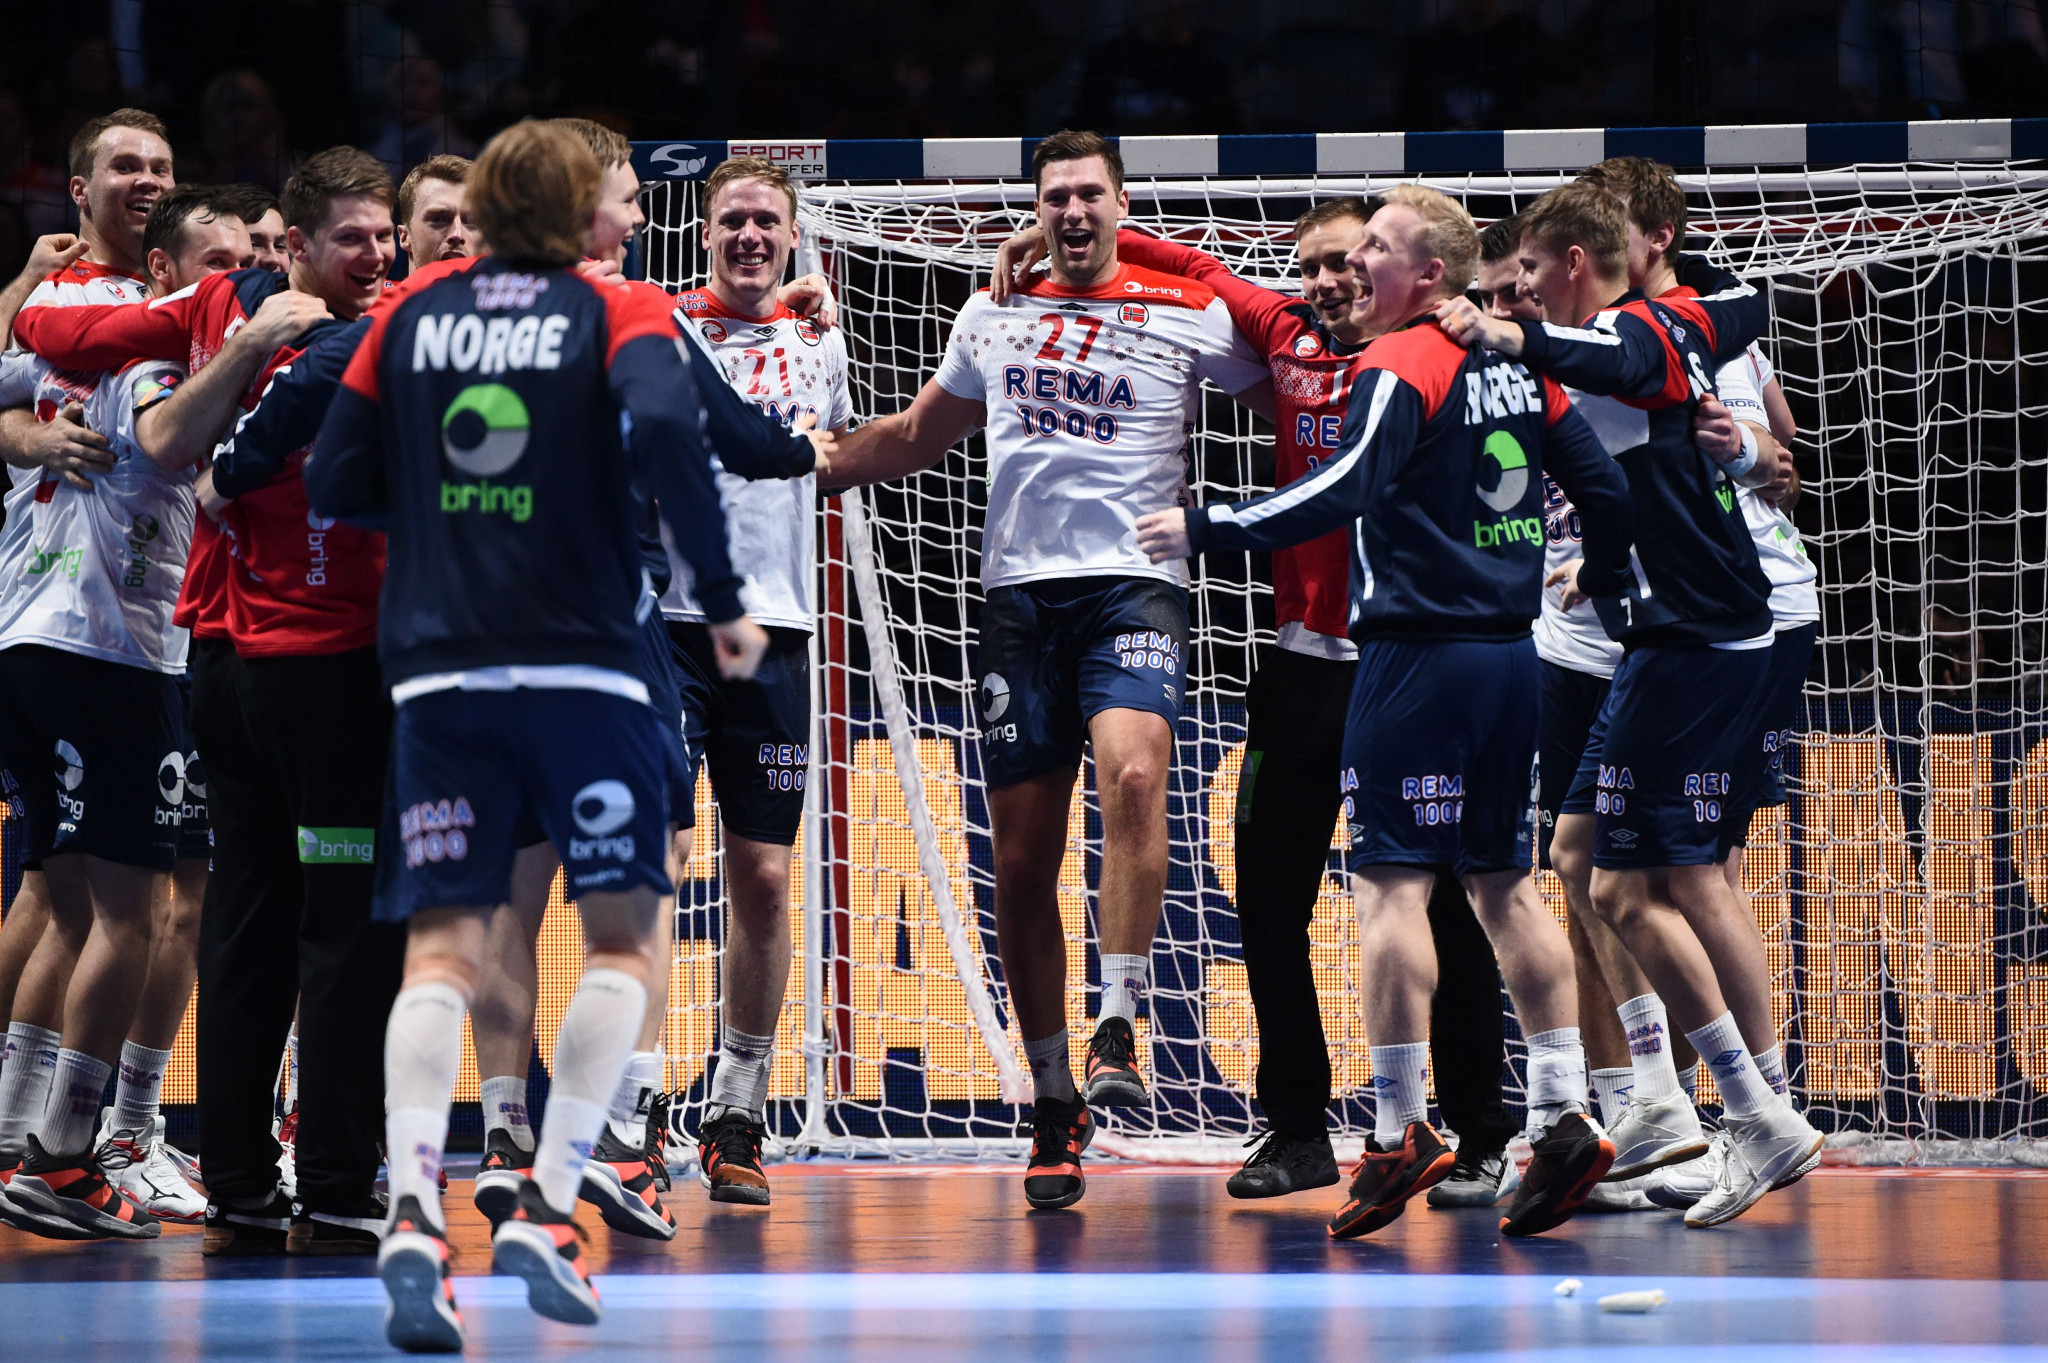 Norway celebrate after winning the Men's European Handball Championship bronze medal ©Getty Images